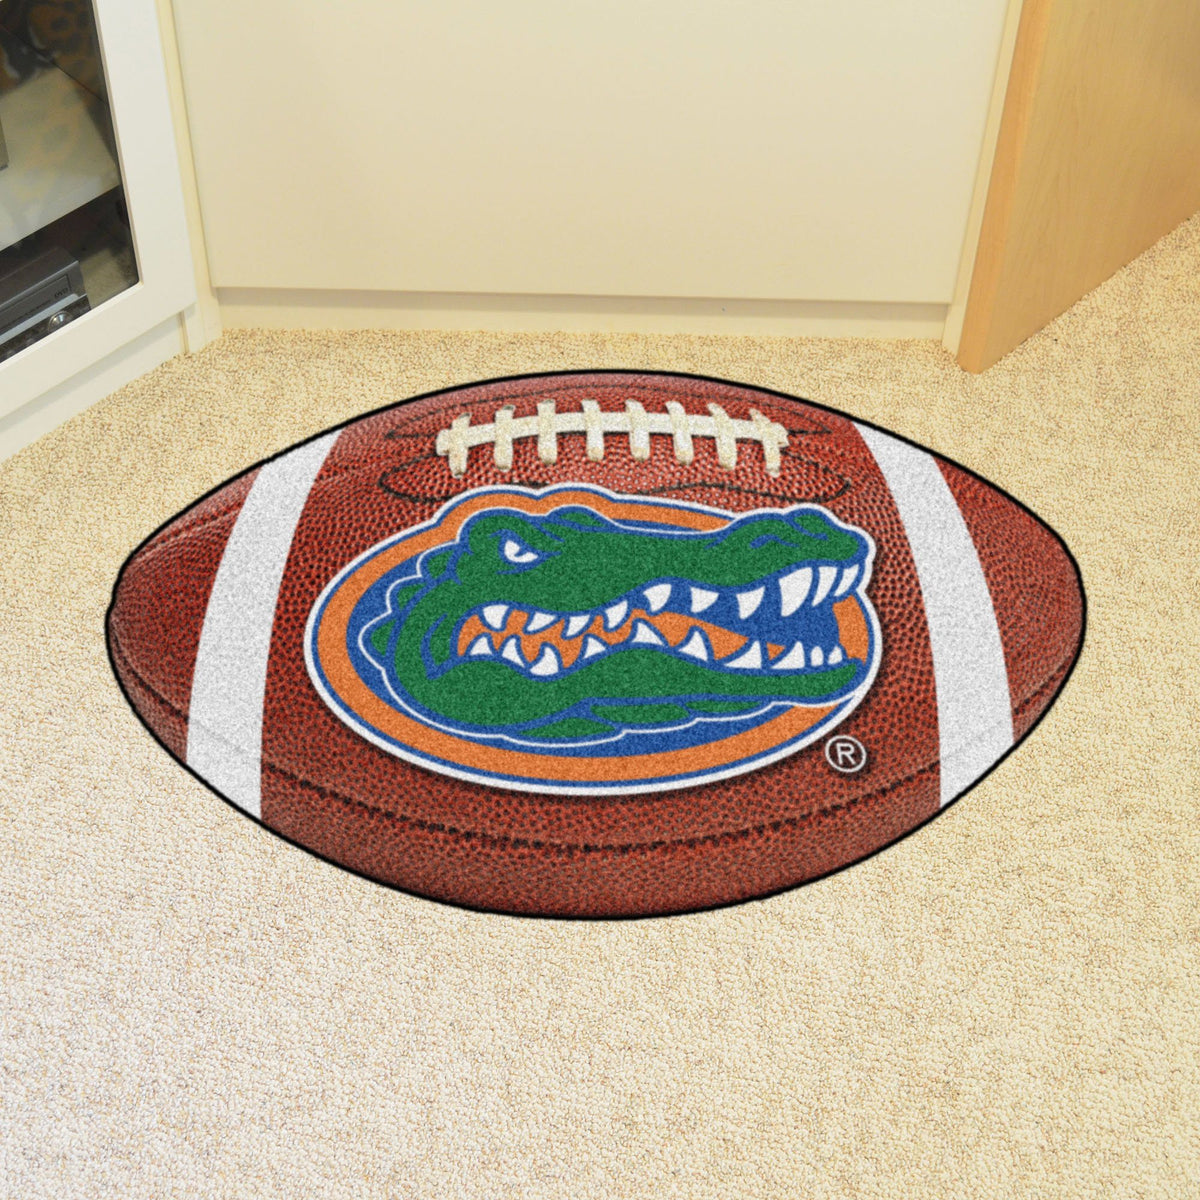 Collegiate - Football Mat: A - K Collegiate Mats, Rectangular Mats, Football Mat, Collegiate, Home Fan Mats Florida